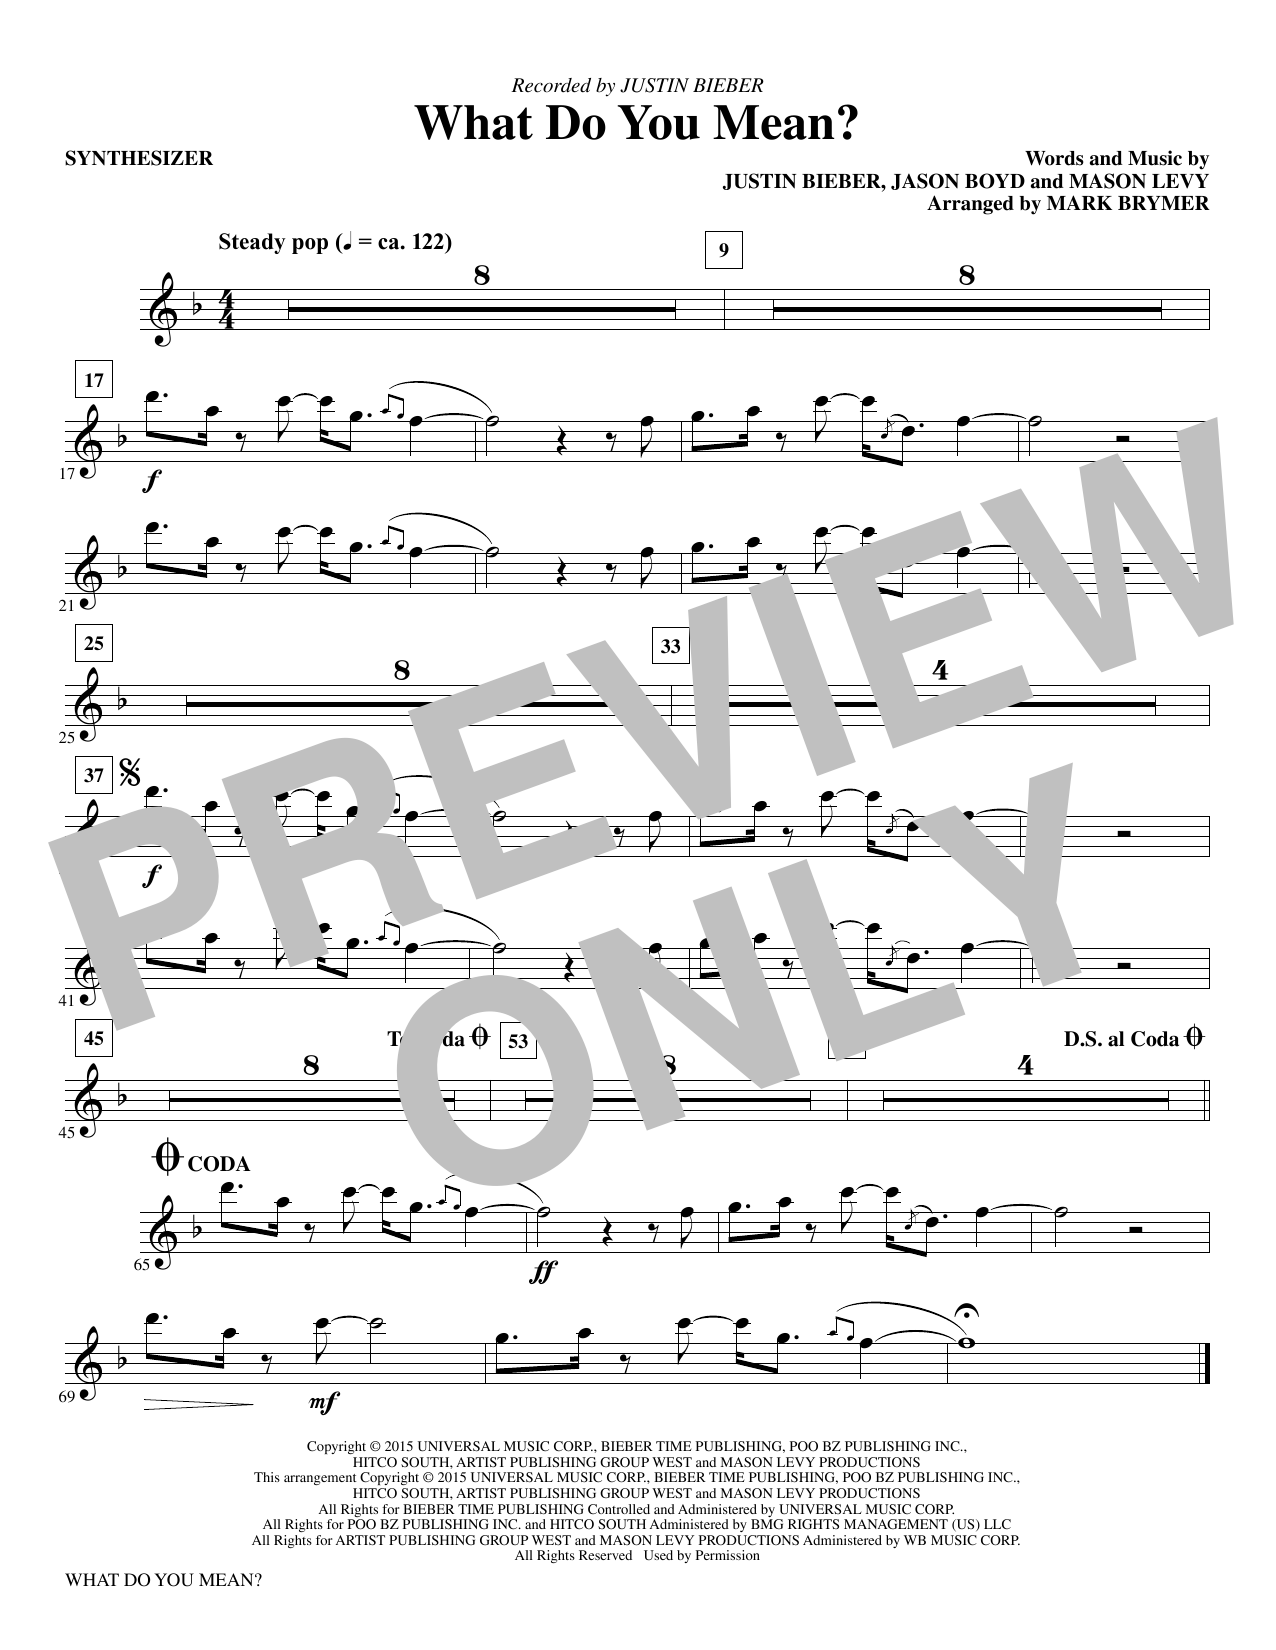 What Do You Mean? (complete set of parts) sheet music for orchestra/band by Mason Levy, Jason Boyd, Justin Bieber and Mark Brymer. Score Image Preview.